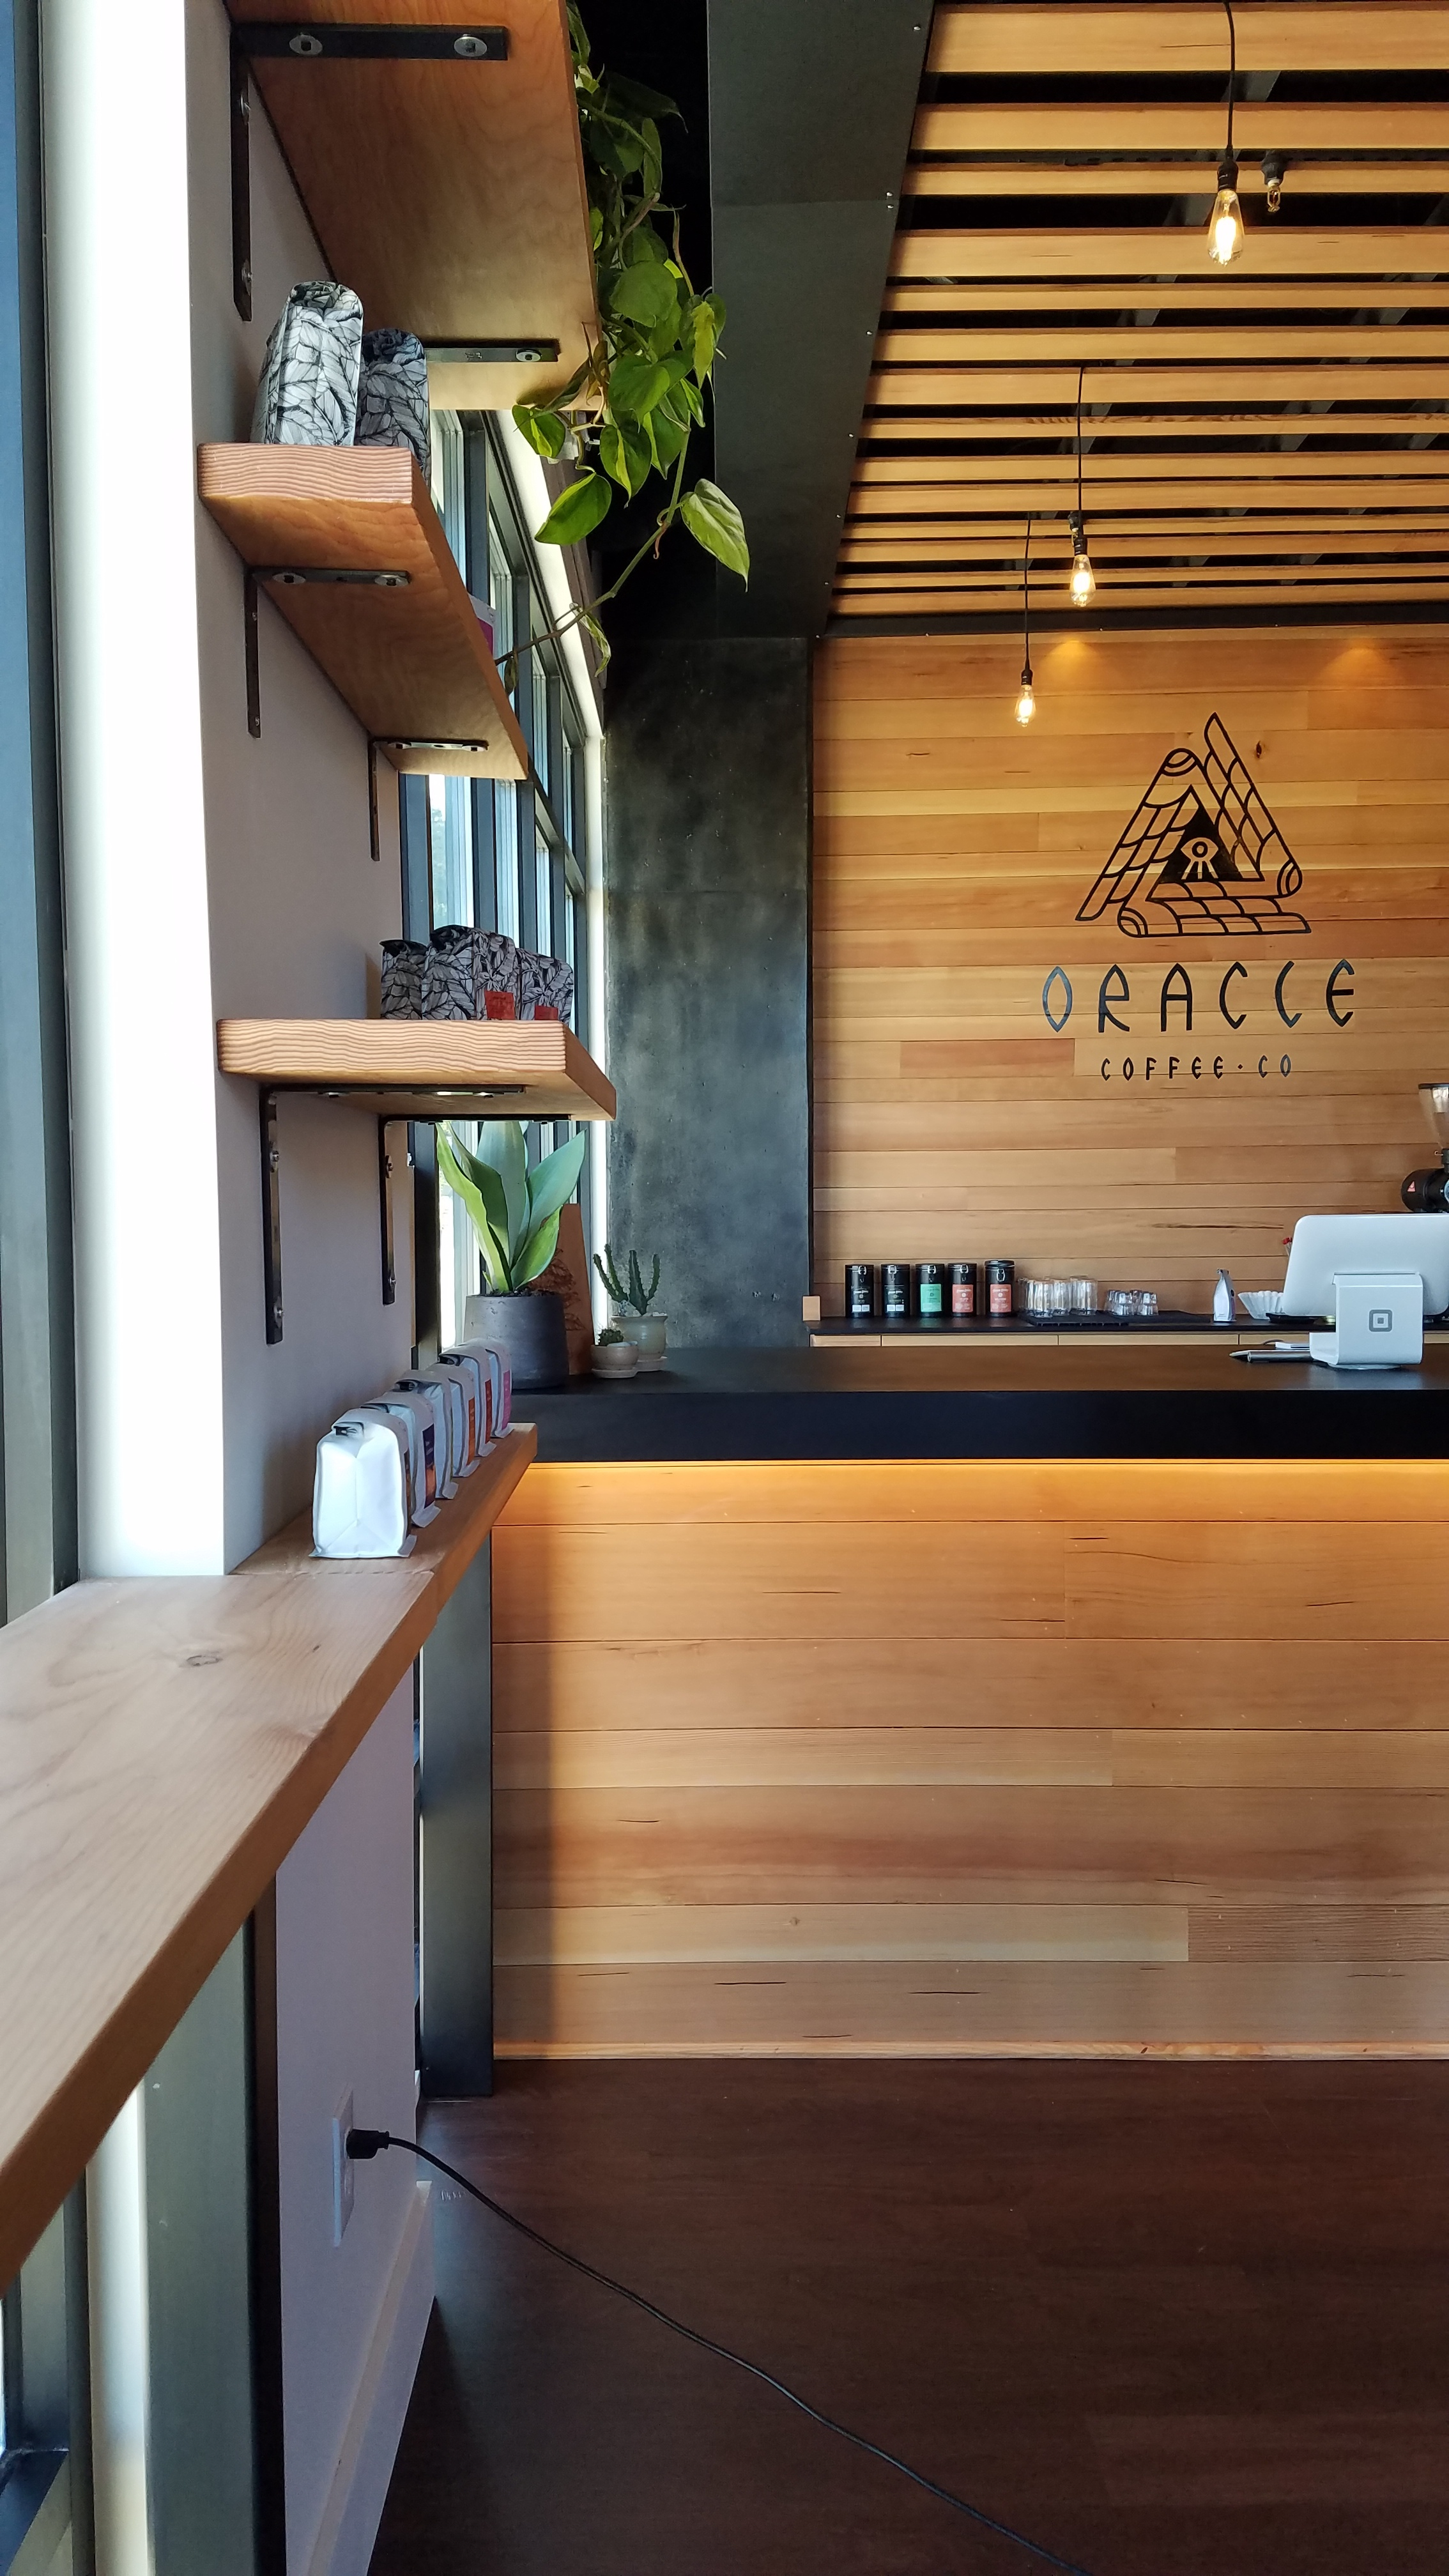 ORACLE COFFEE CO.